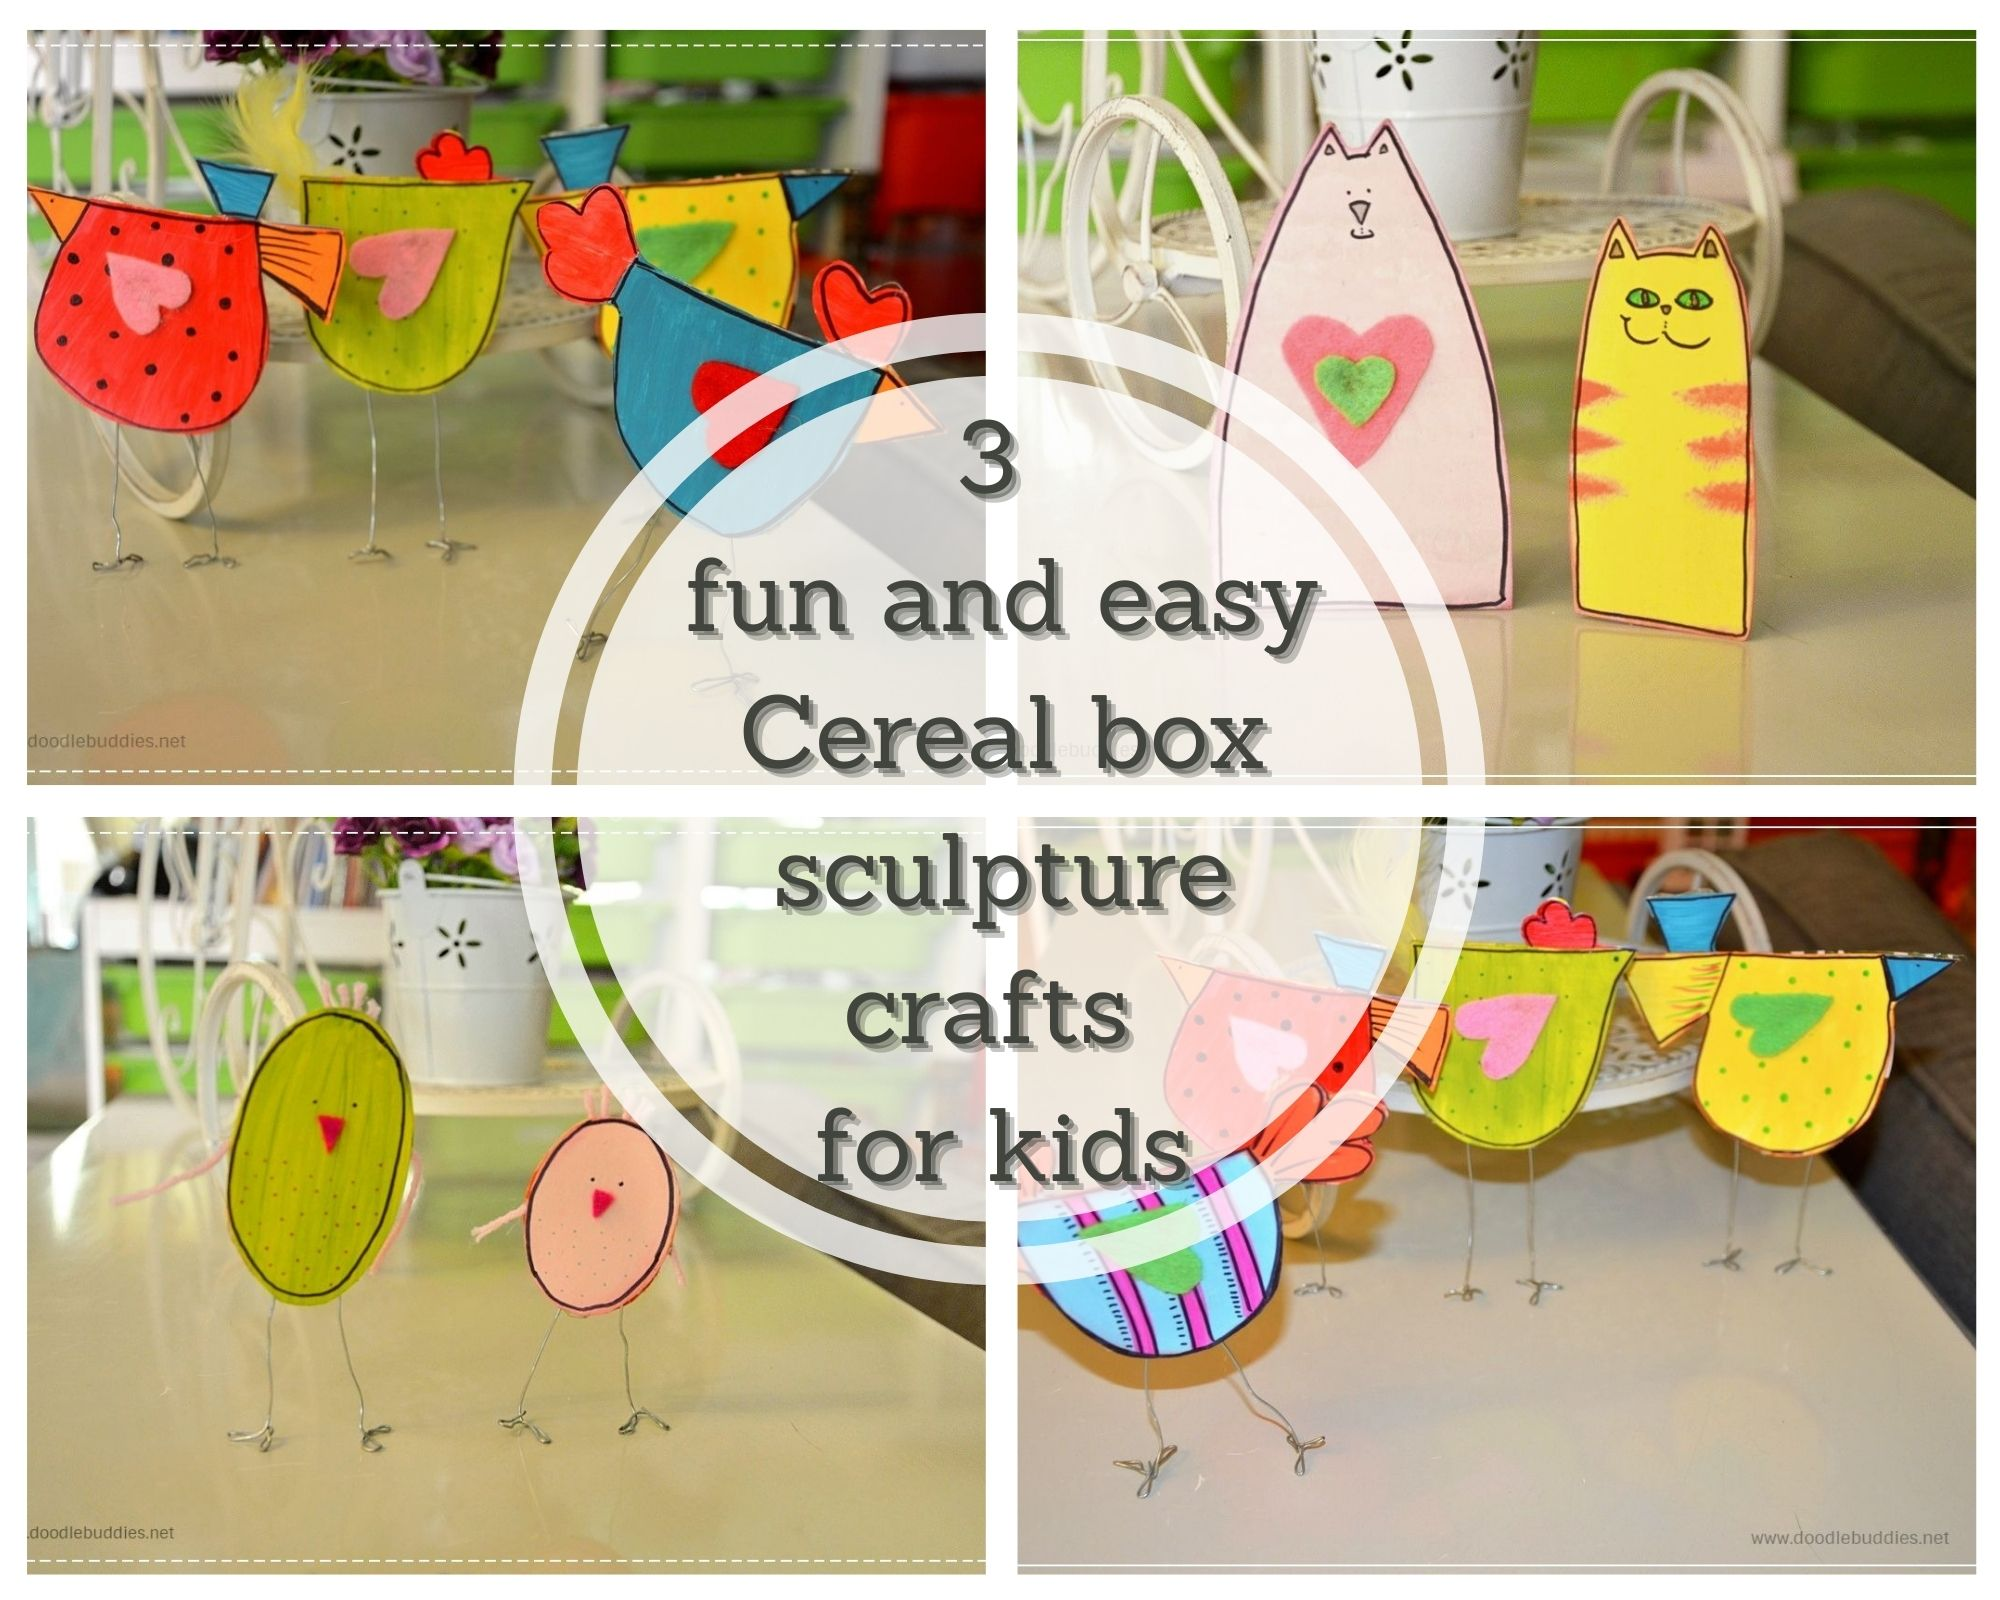 3 Ways to create amazing and fun cereal box sculptures.